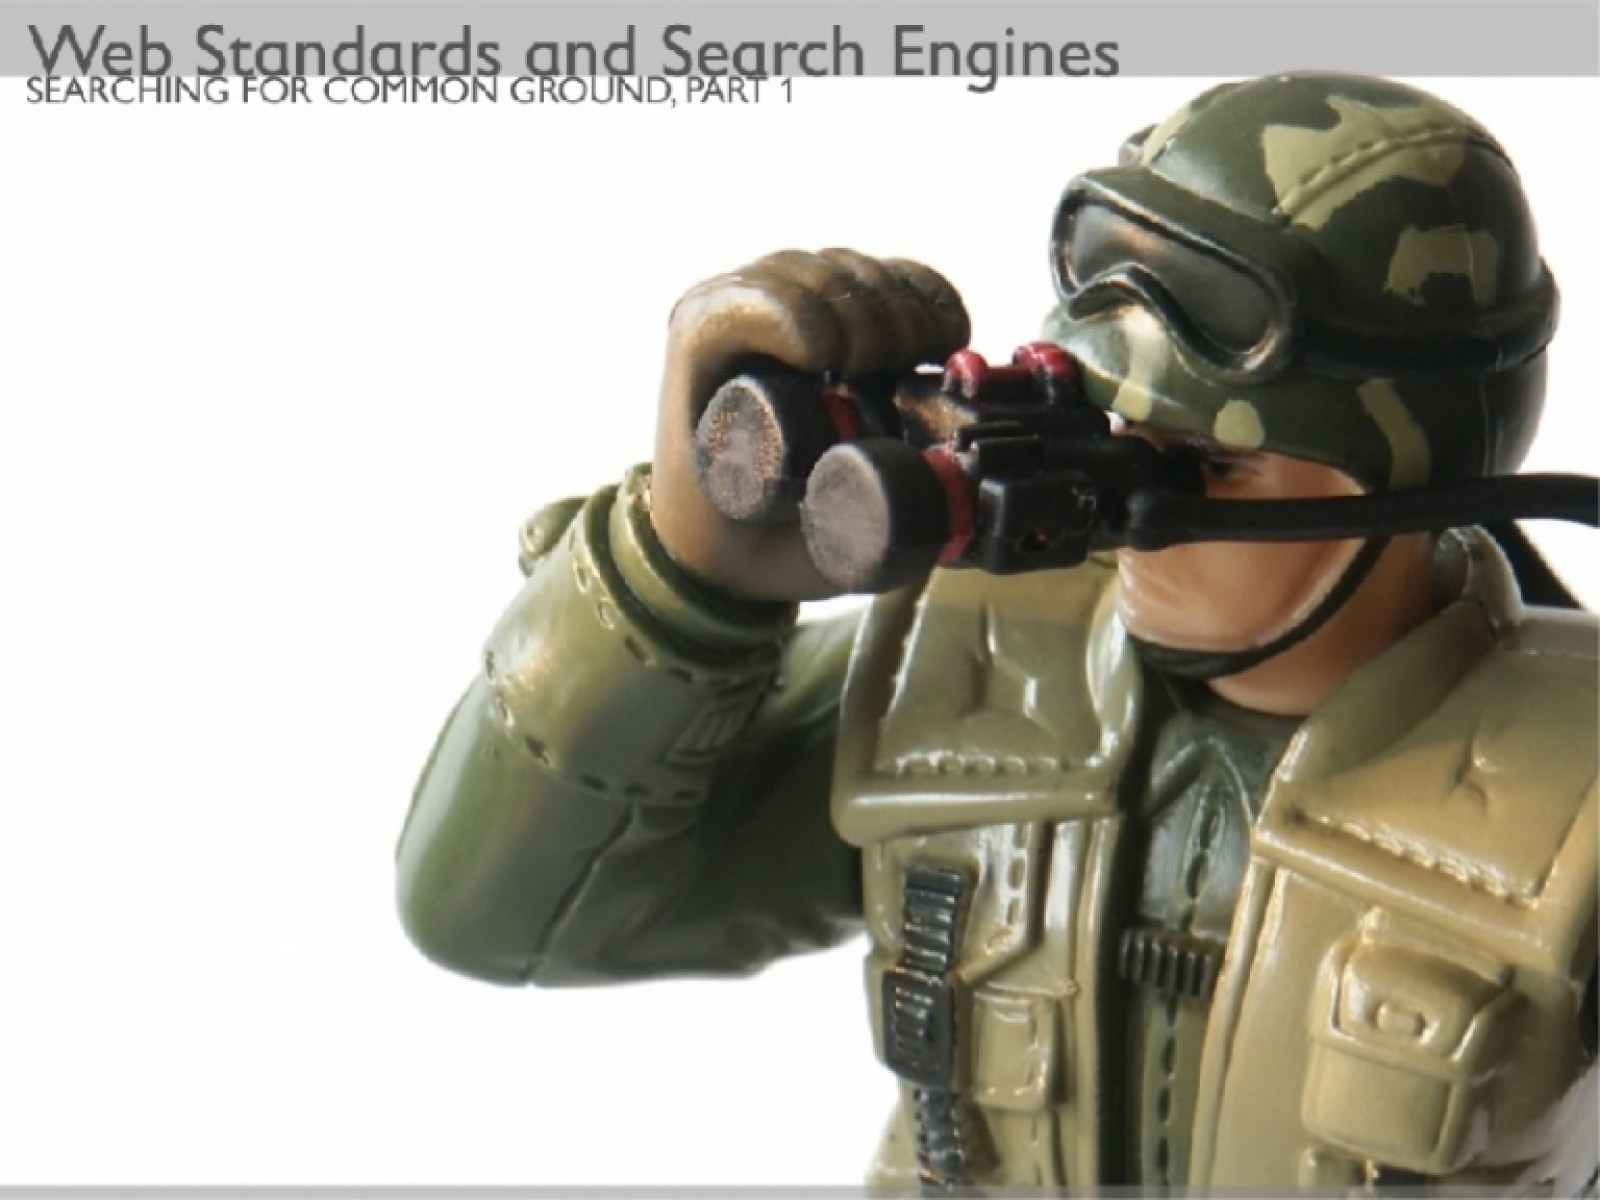 Web Standards and Search Engines